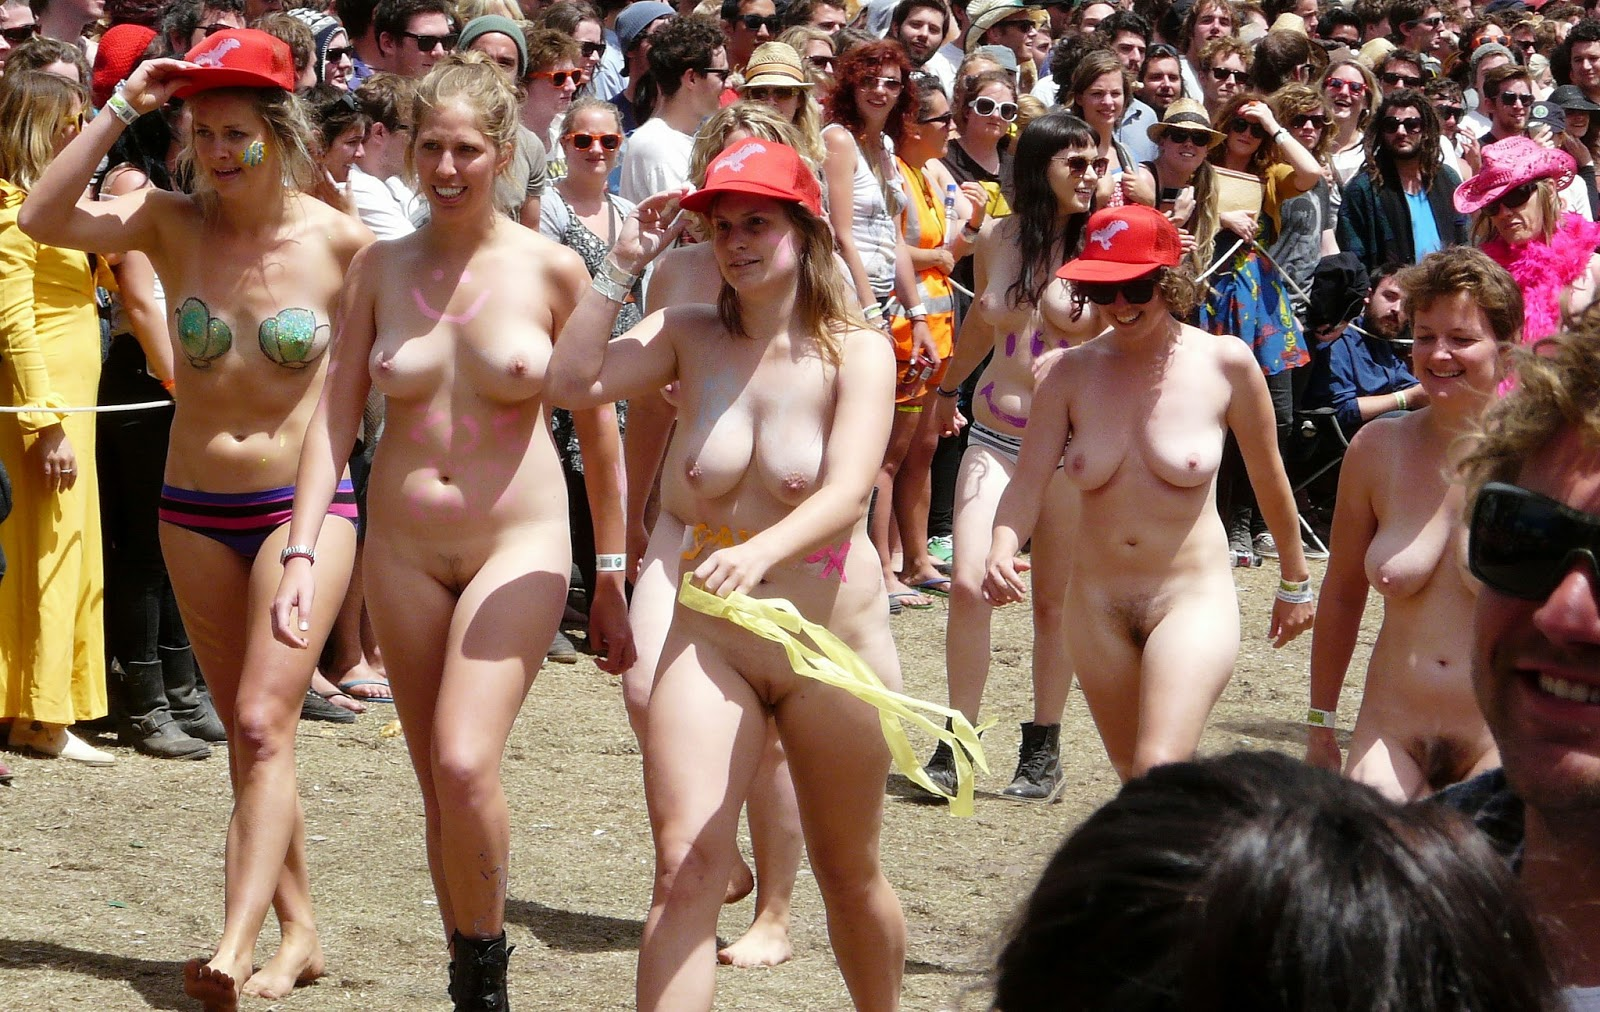 Final, College naked run girl opinion